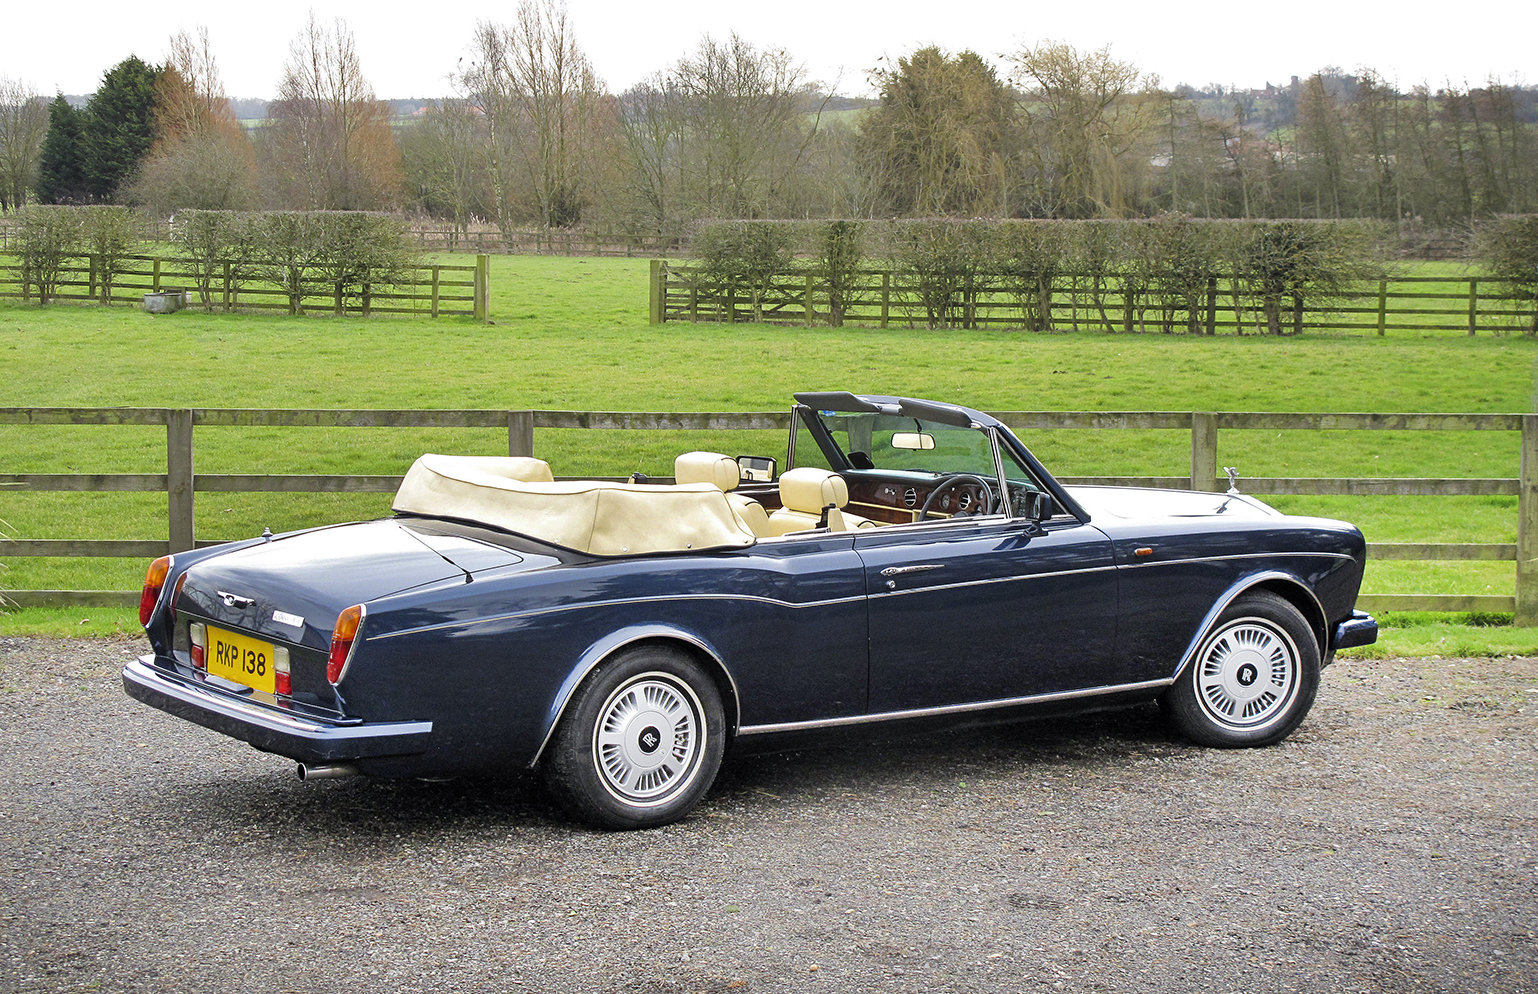 1989 Rolls-Royce Corniche II Convertible **SOLD** For Sale (picture 3 of 6)